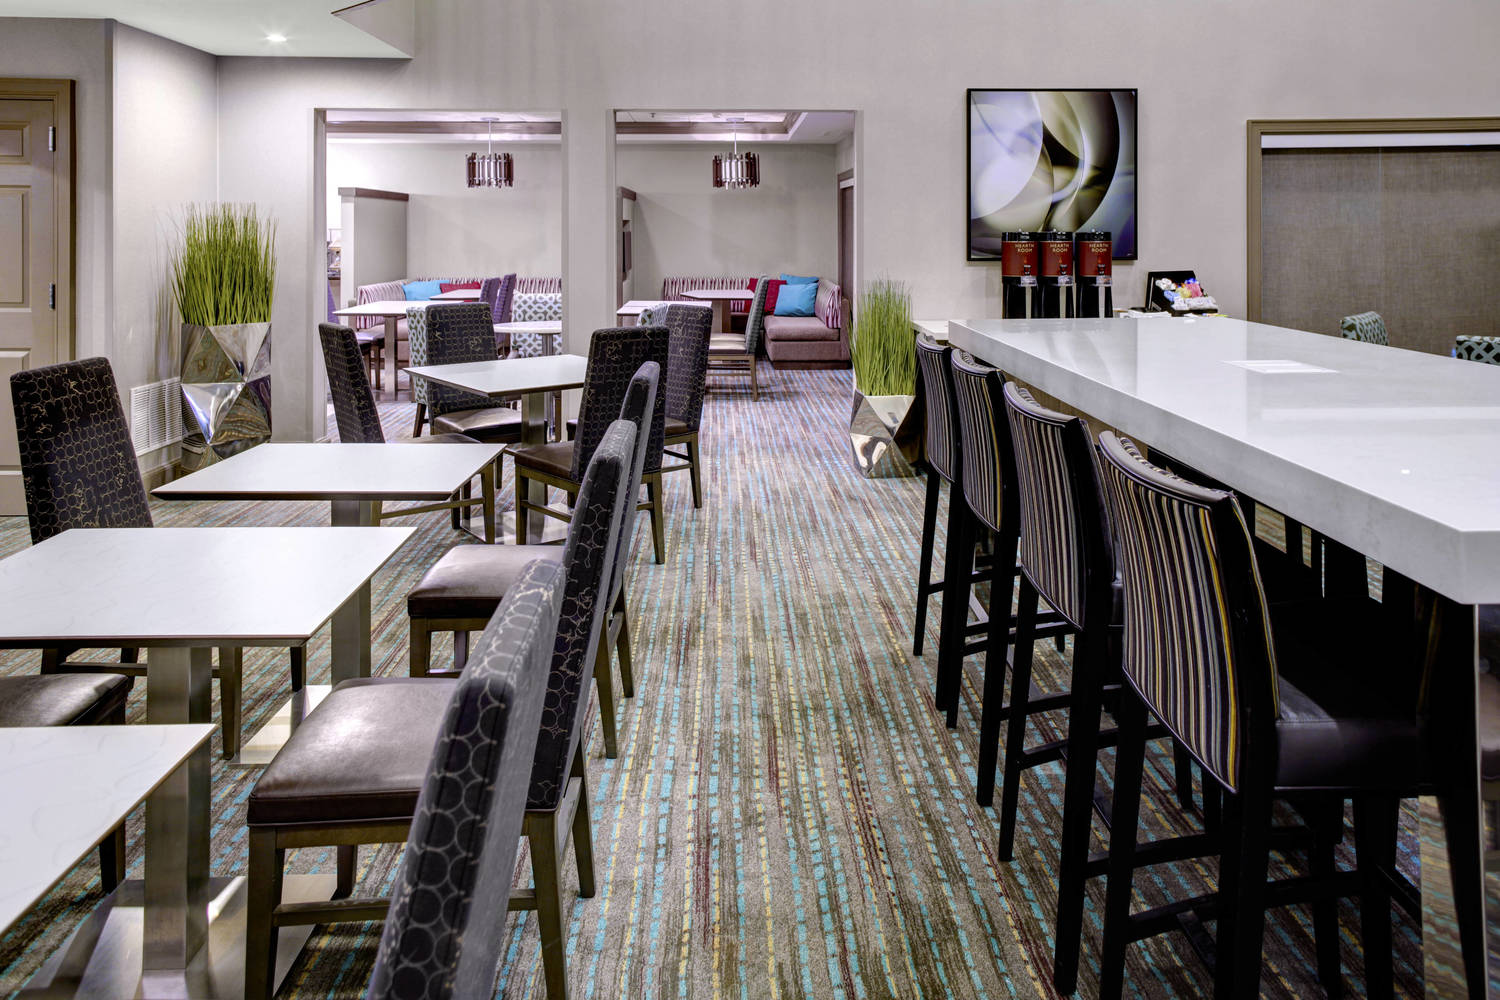 Our individual media pods and large communal table allow you to continue your work in a social area.